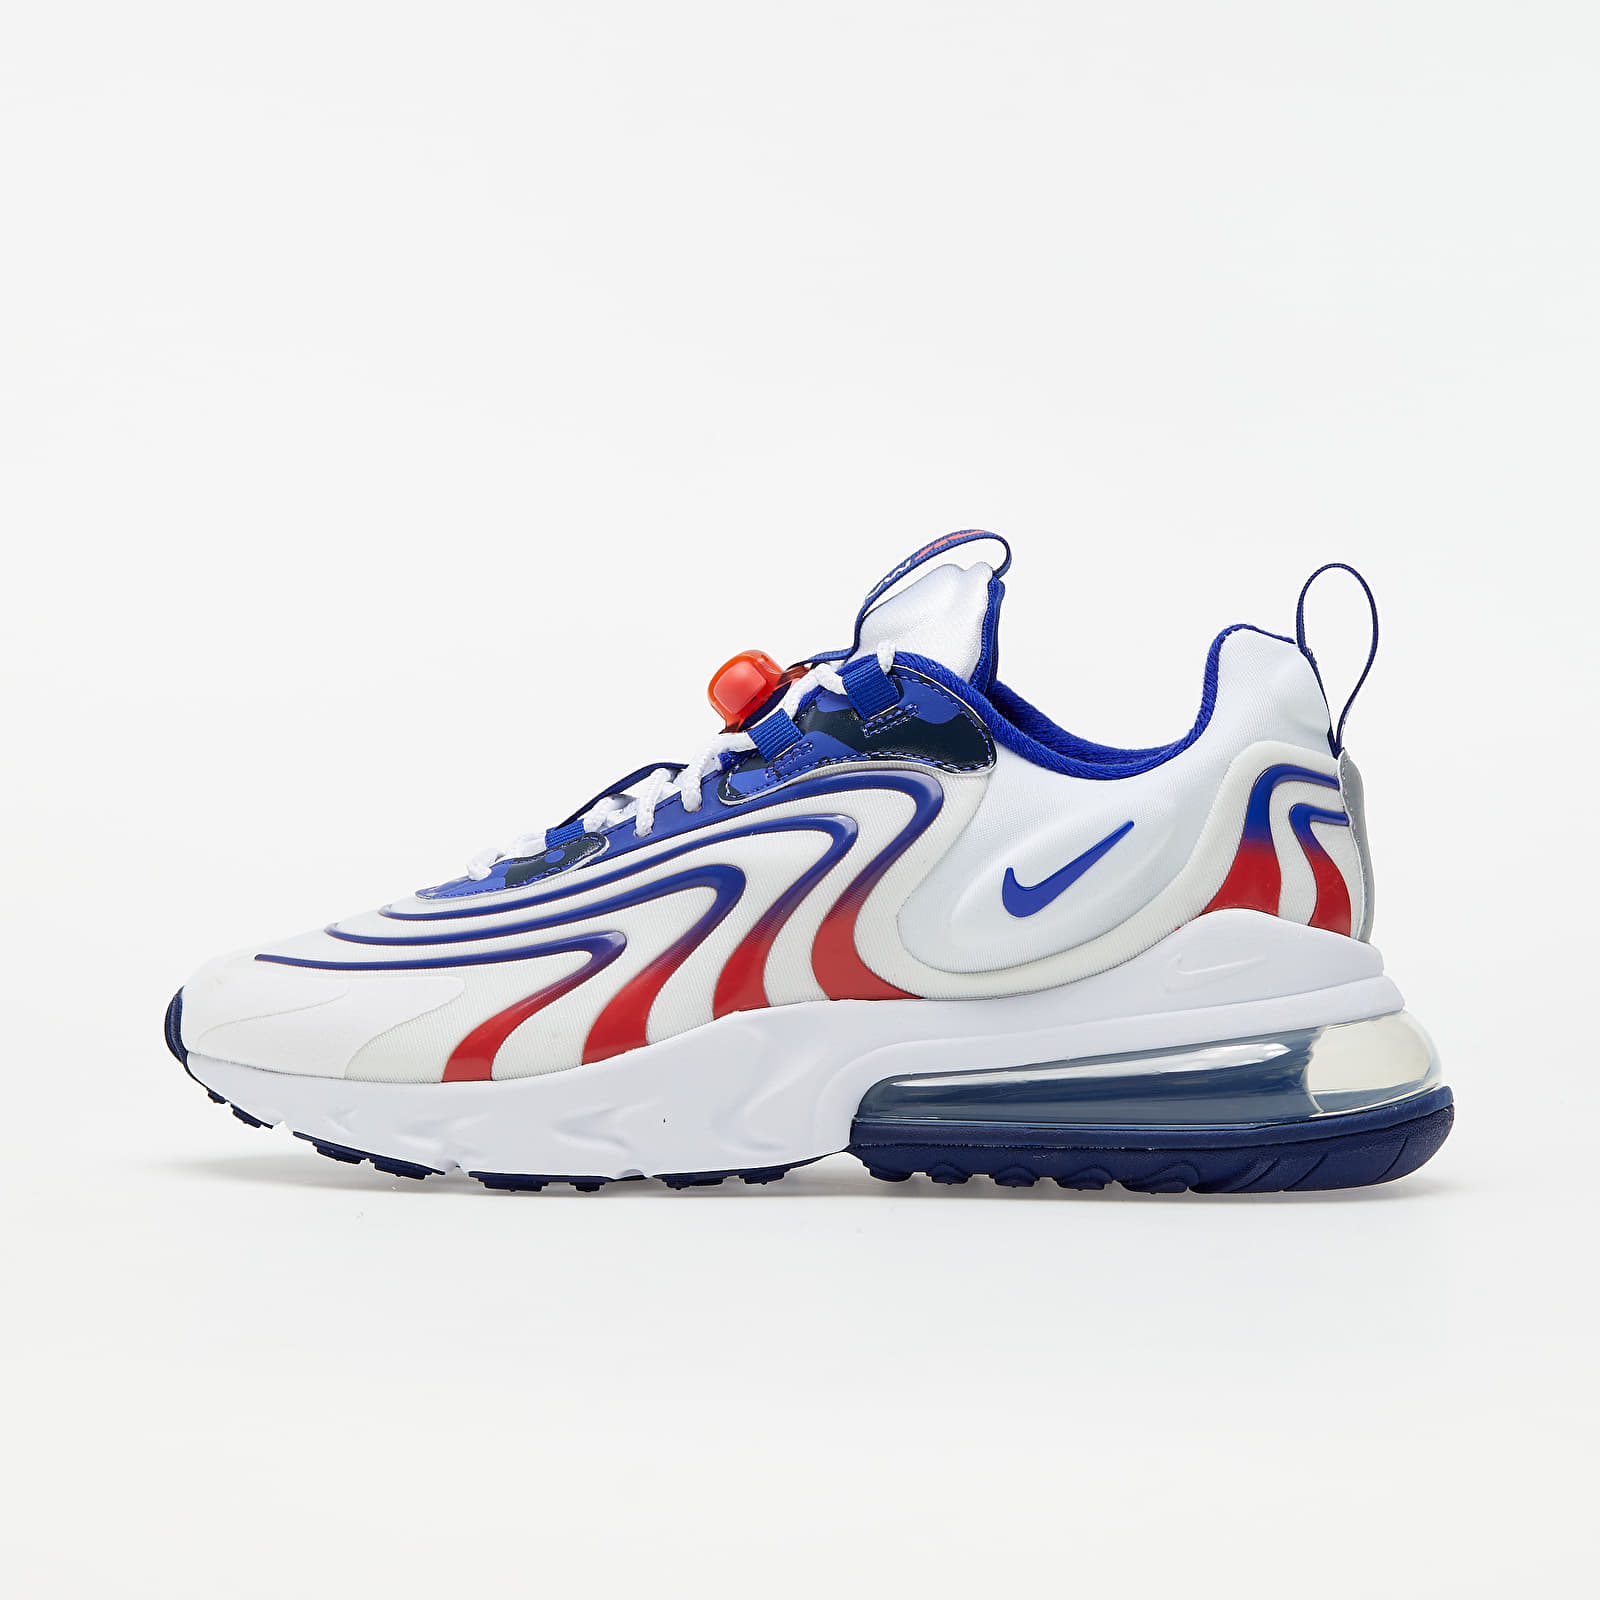 Pánske tenisky a topánky Nike Air Max 270 React ENG White/ Concord-Ember Glow